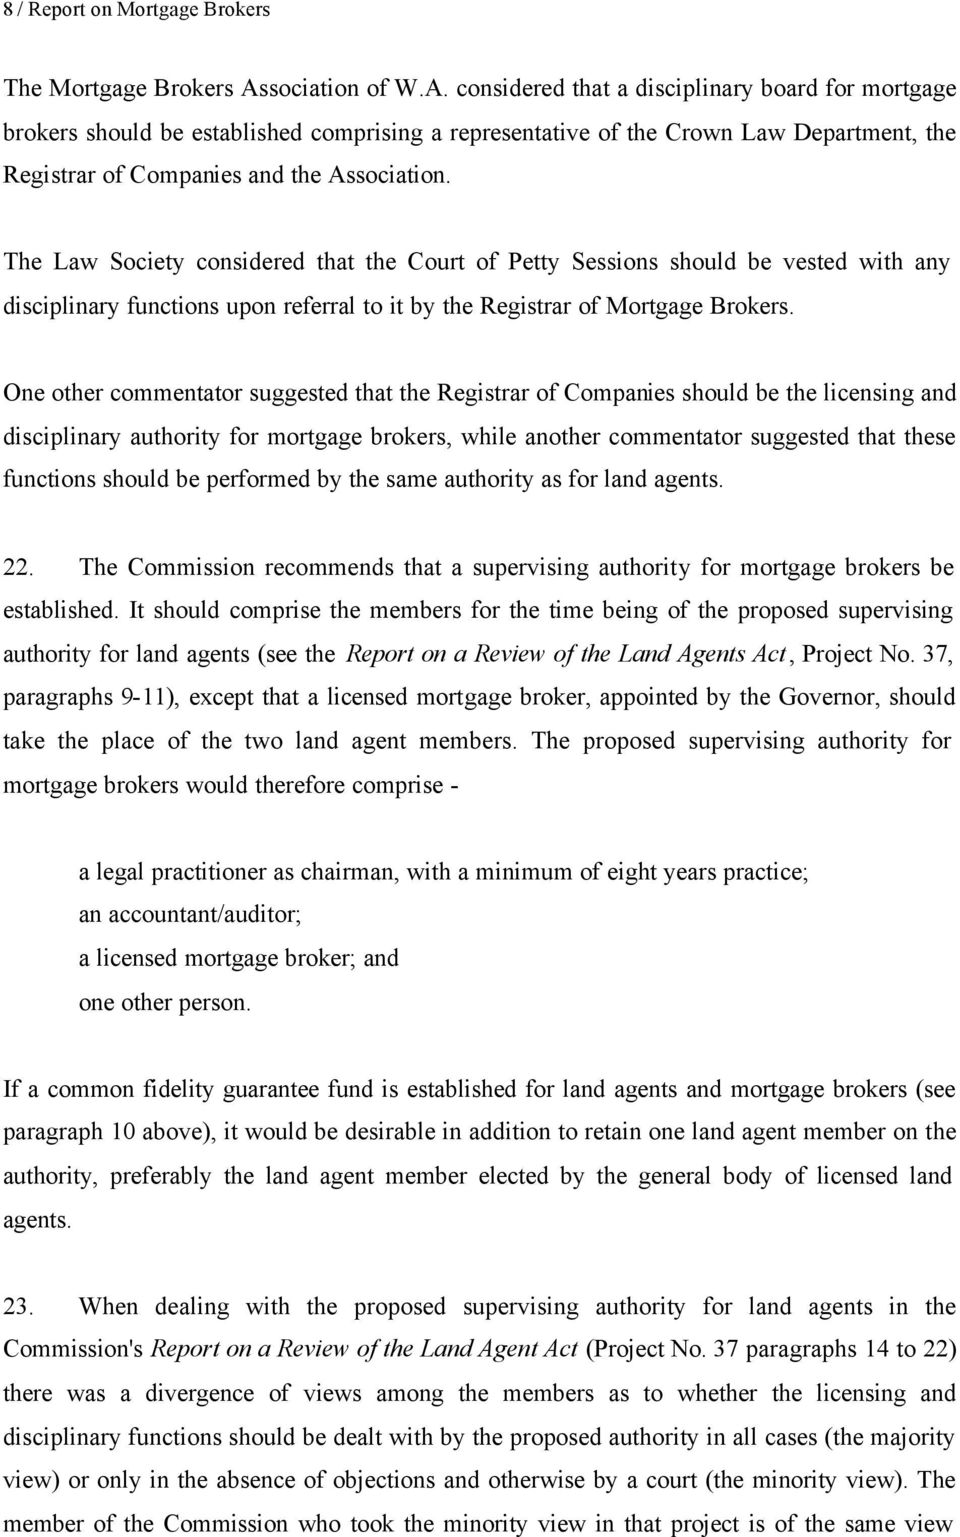 considered that a disciplinary board for mortgage brokers should be established comprising a representative of the Crown Law Department, the Registrar of Companies and the Association.